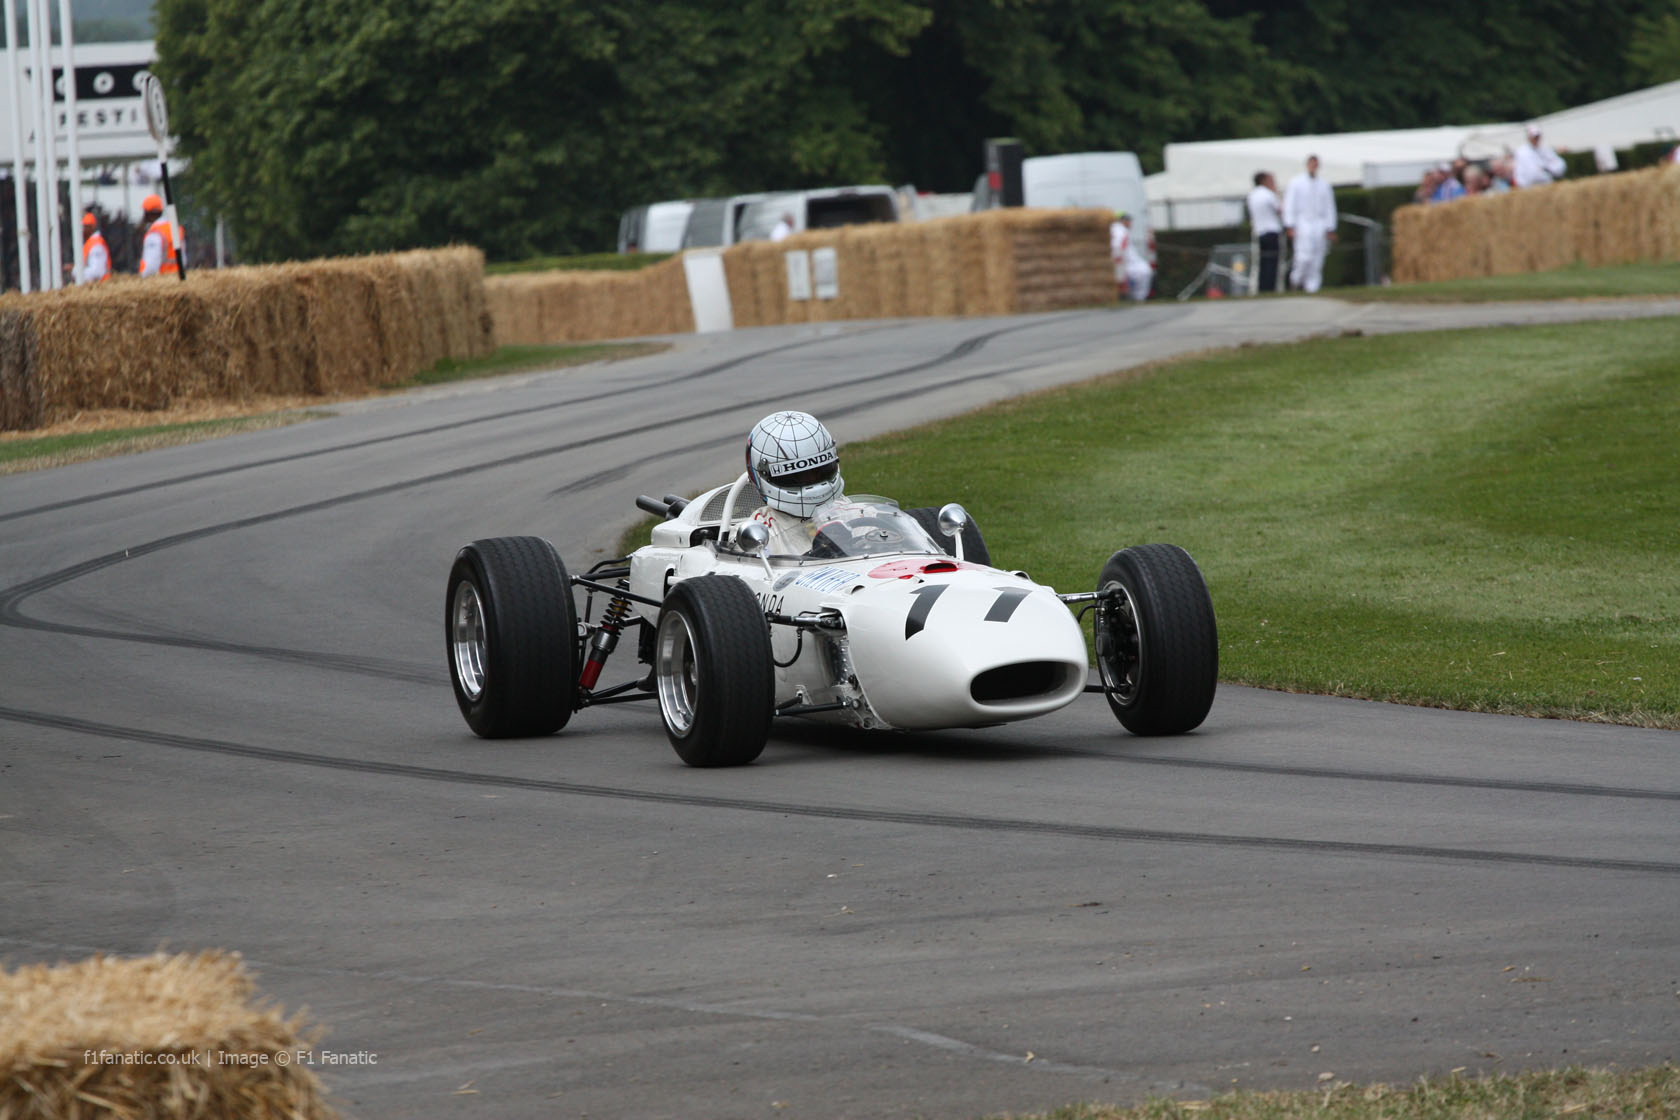 Honda RA272 (2), Goodwood Festival of Speed, 2014